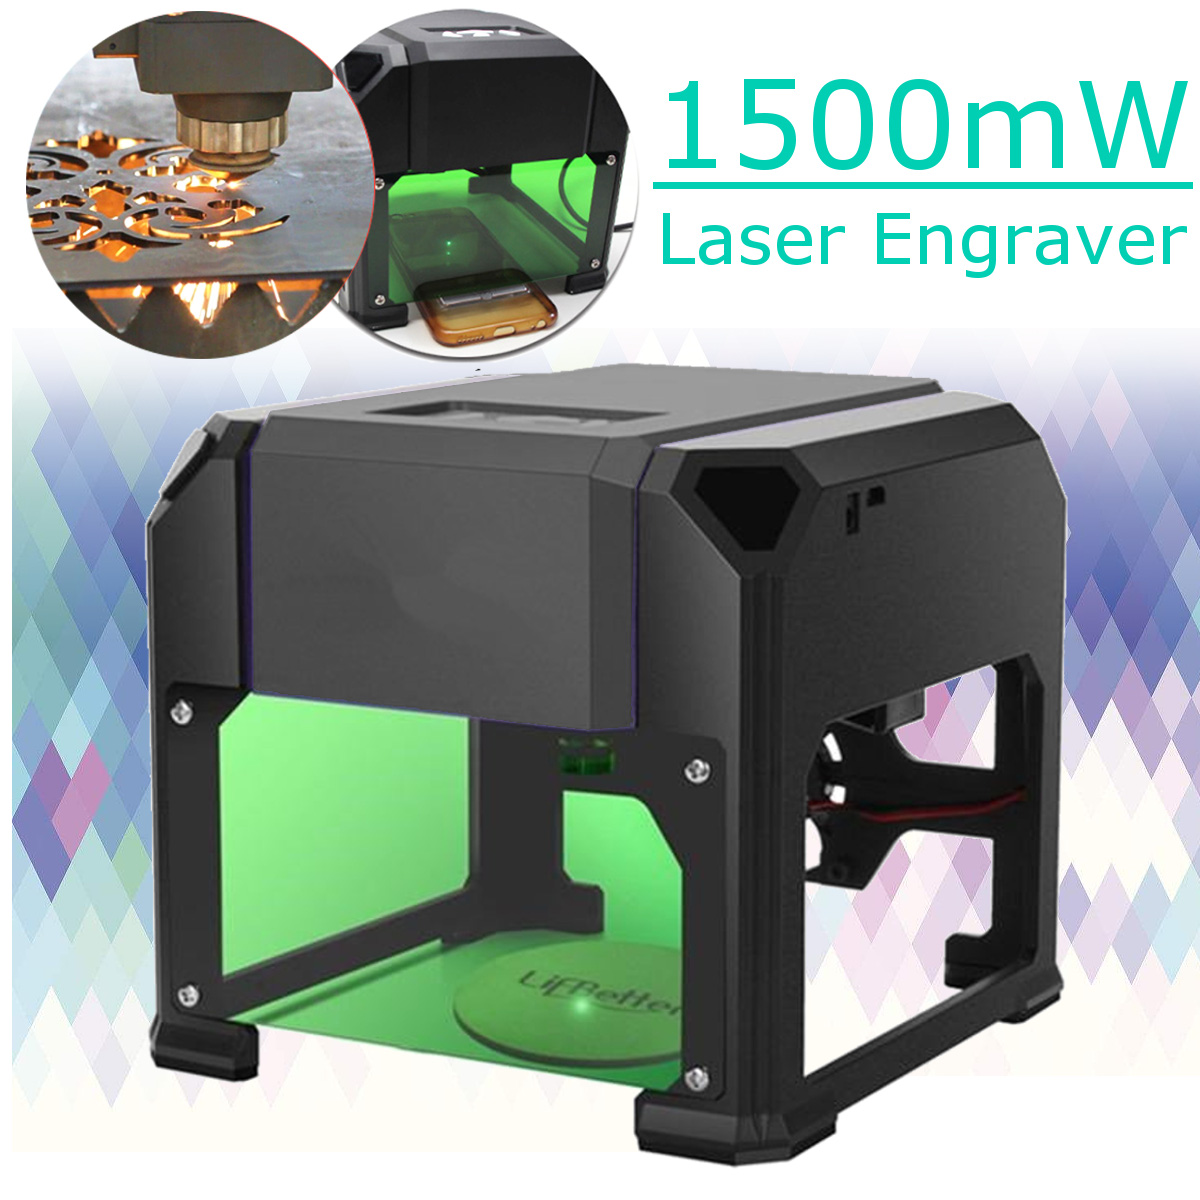 1500mw USB Desktop Laser Engraving Machine DIY Logo Marking Engraver CNC Laser Carving Machine 80x80mm Engraving Range combo roller brush 1 hepa filter 5 for neato botvac 70e 75 80 85 robot vacuum cleaner parts replacement kit filter brush